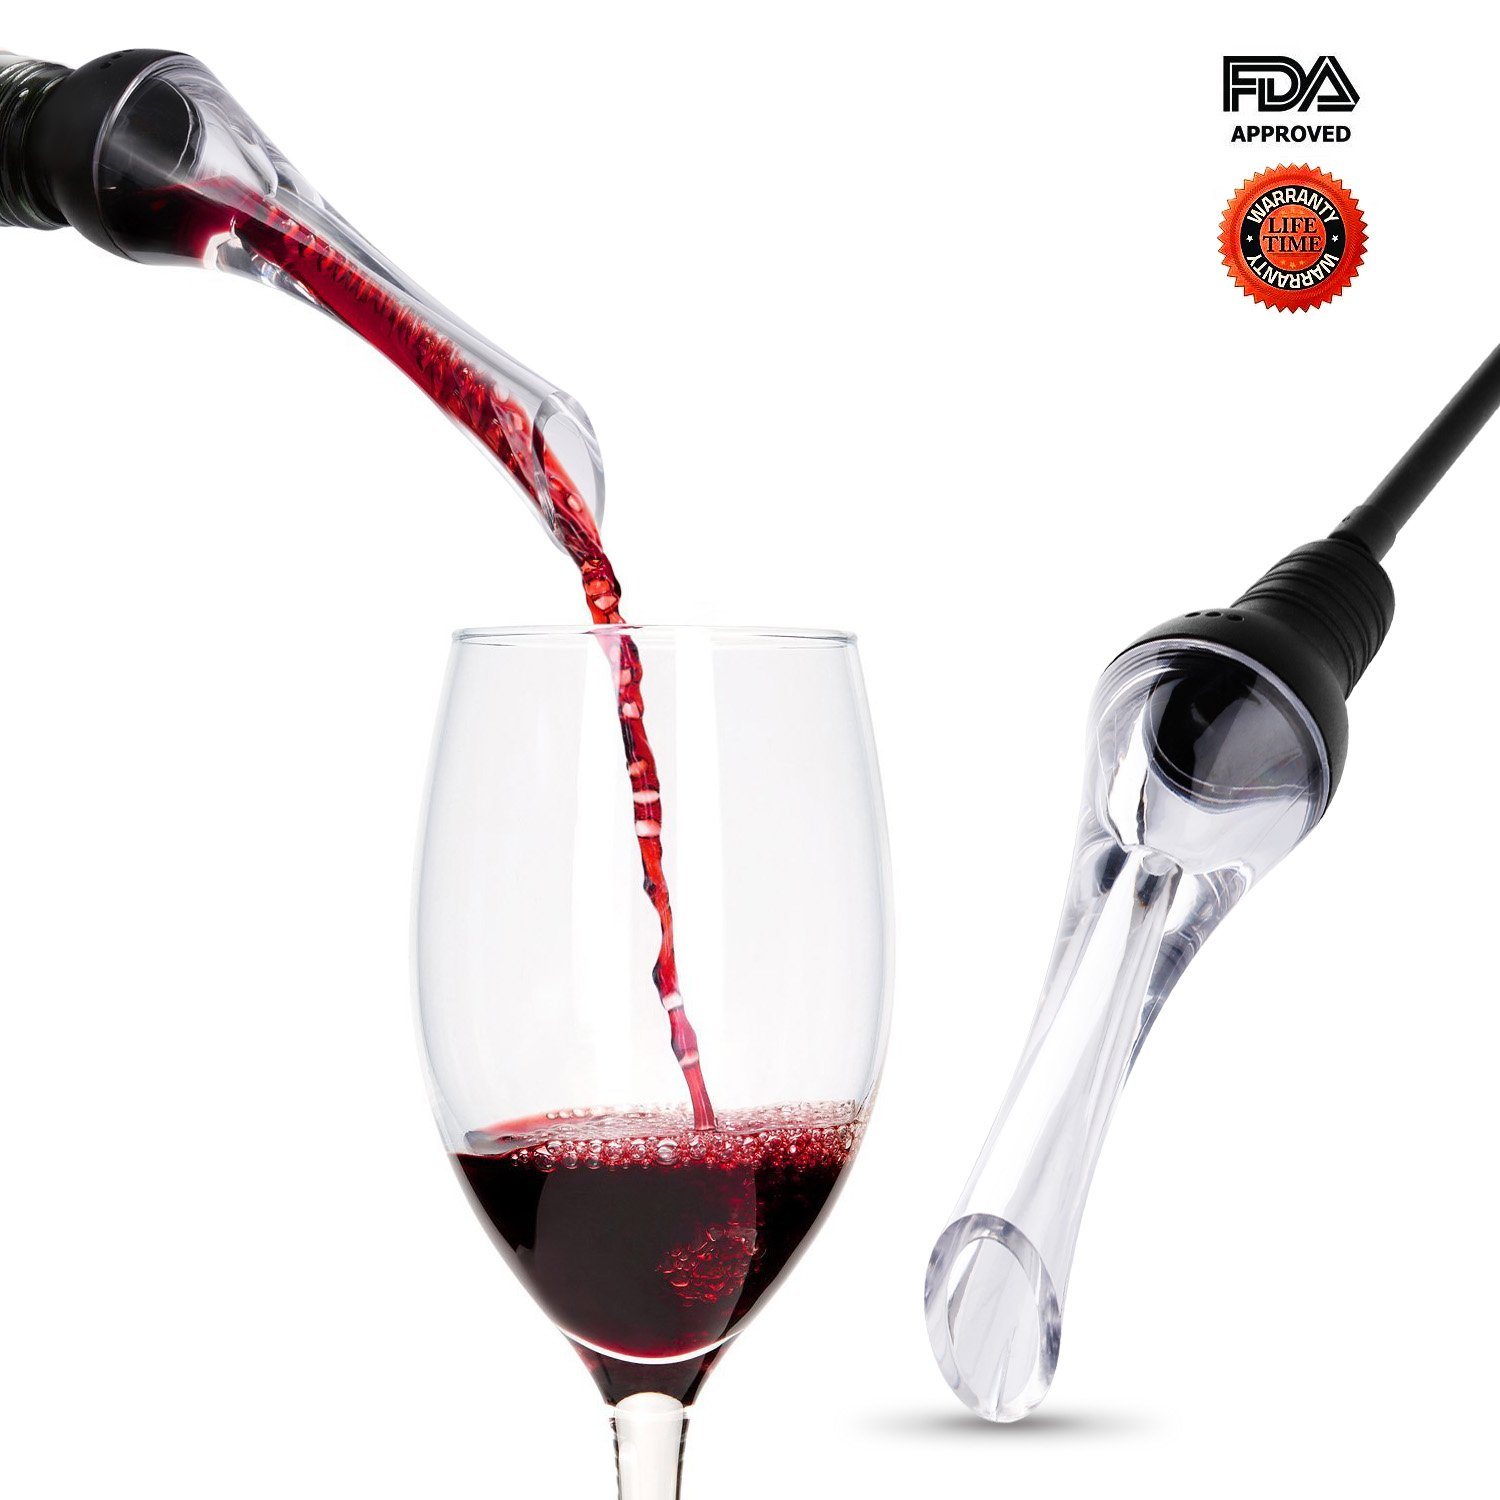 Wine Aerator Pourer,  Premium Aerating Pourer and Decanter Spout, Breather Excellent for Whiskey